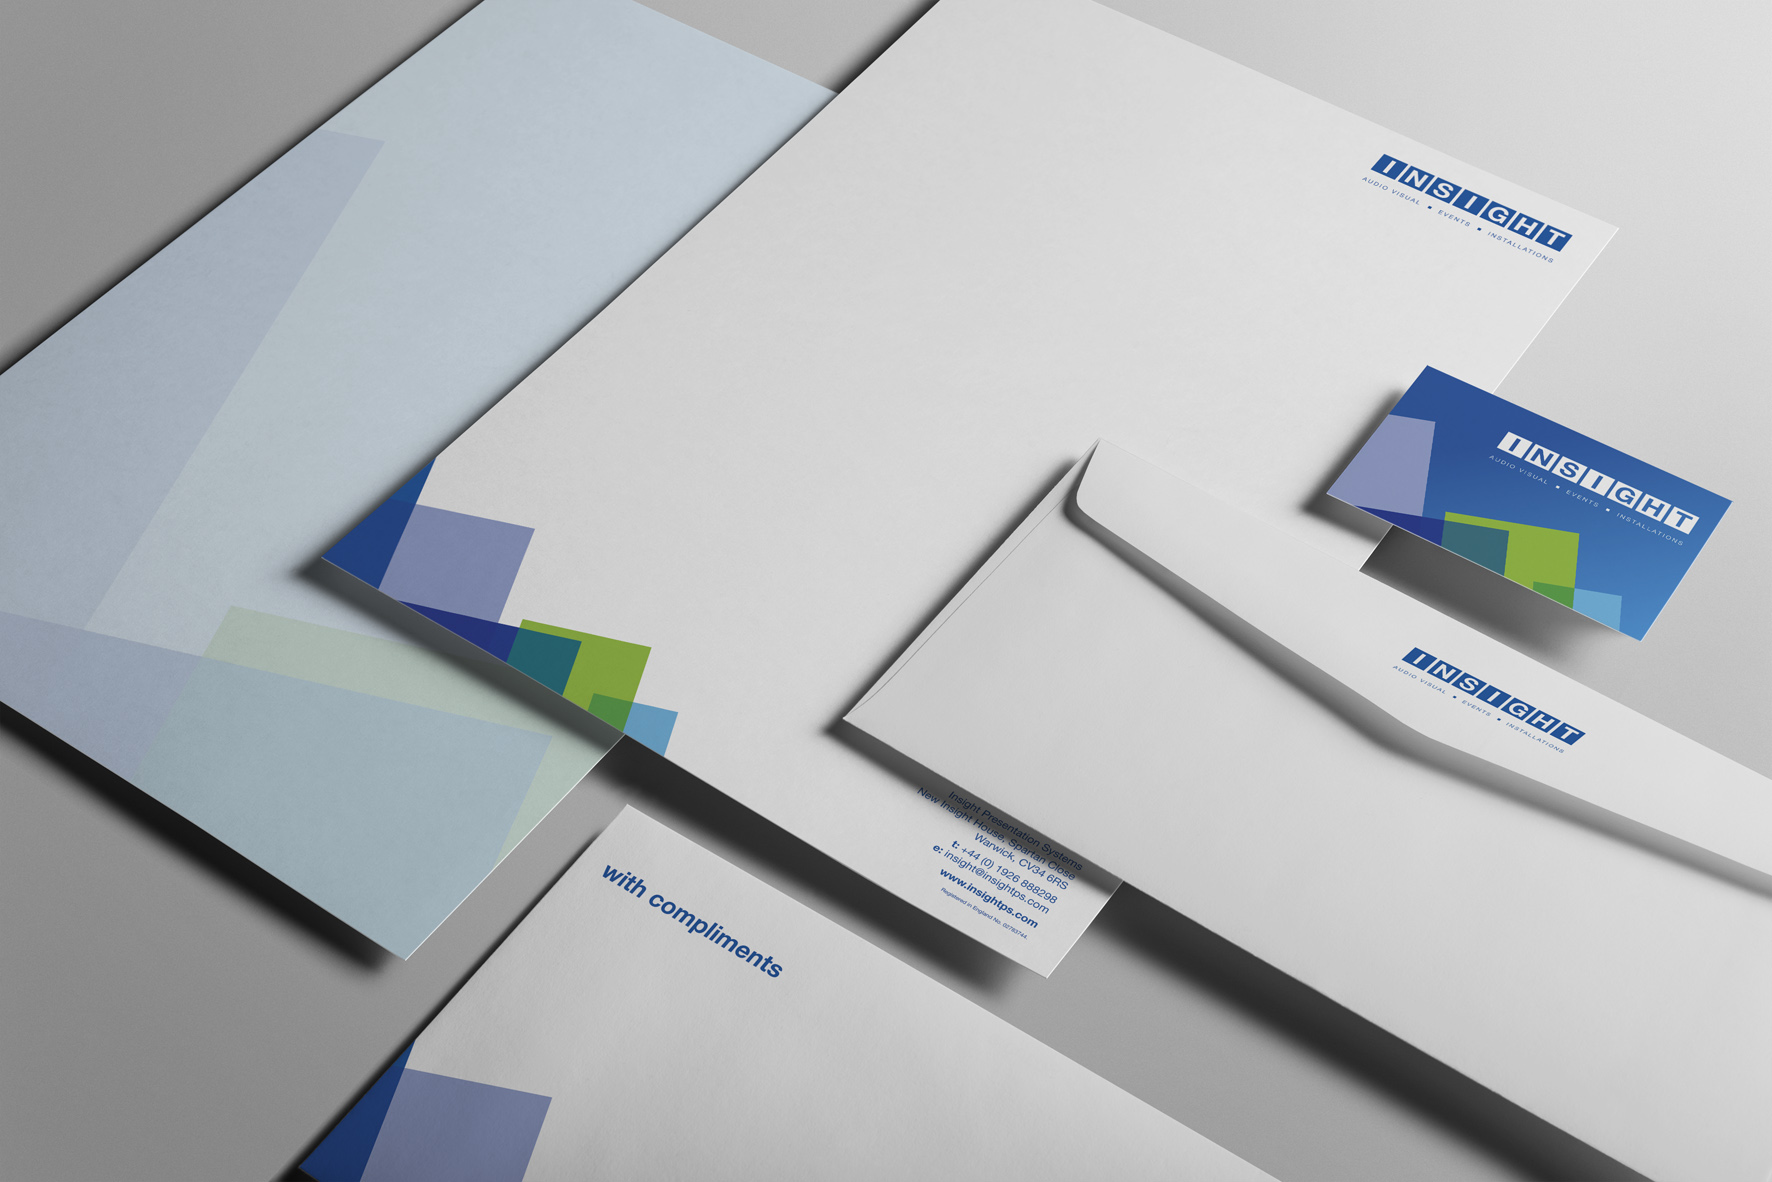 A new company logo design for Insight PS including design and print of new business cards.